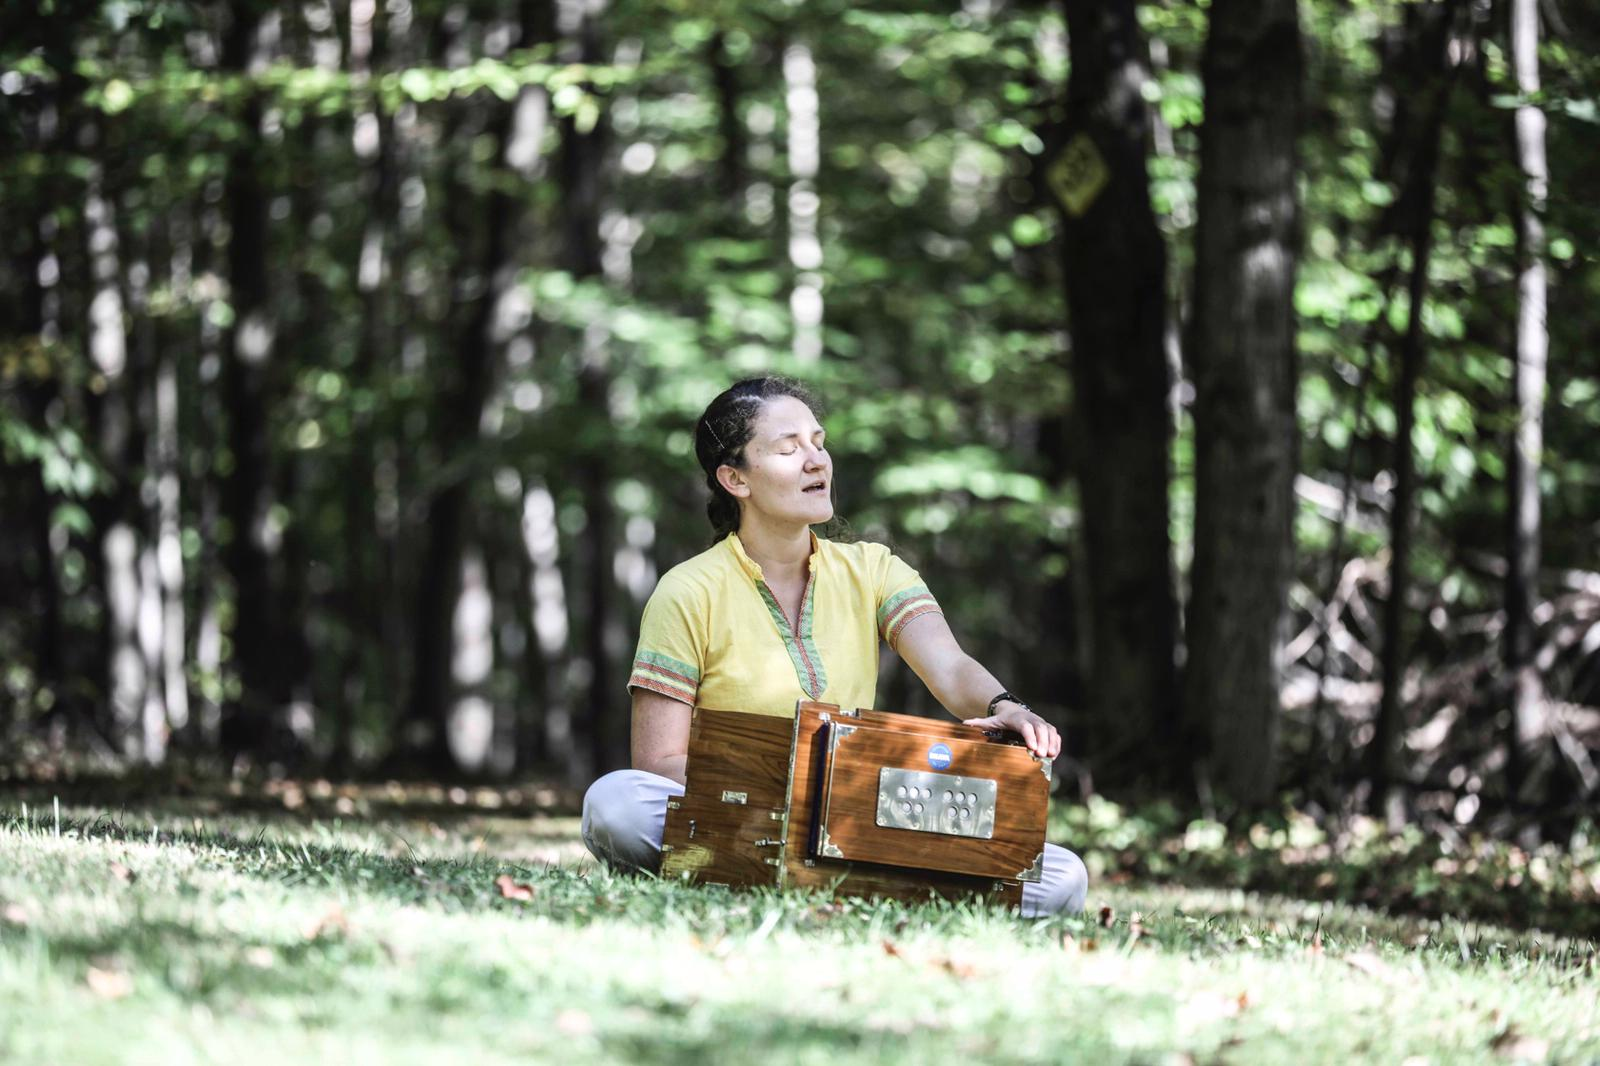 The Power of Kirtan: Singing the Divine Names at the Sivananda Yoga Ranch